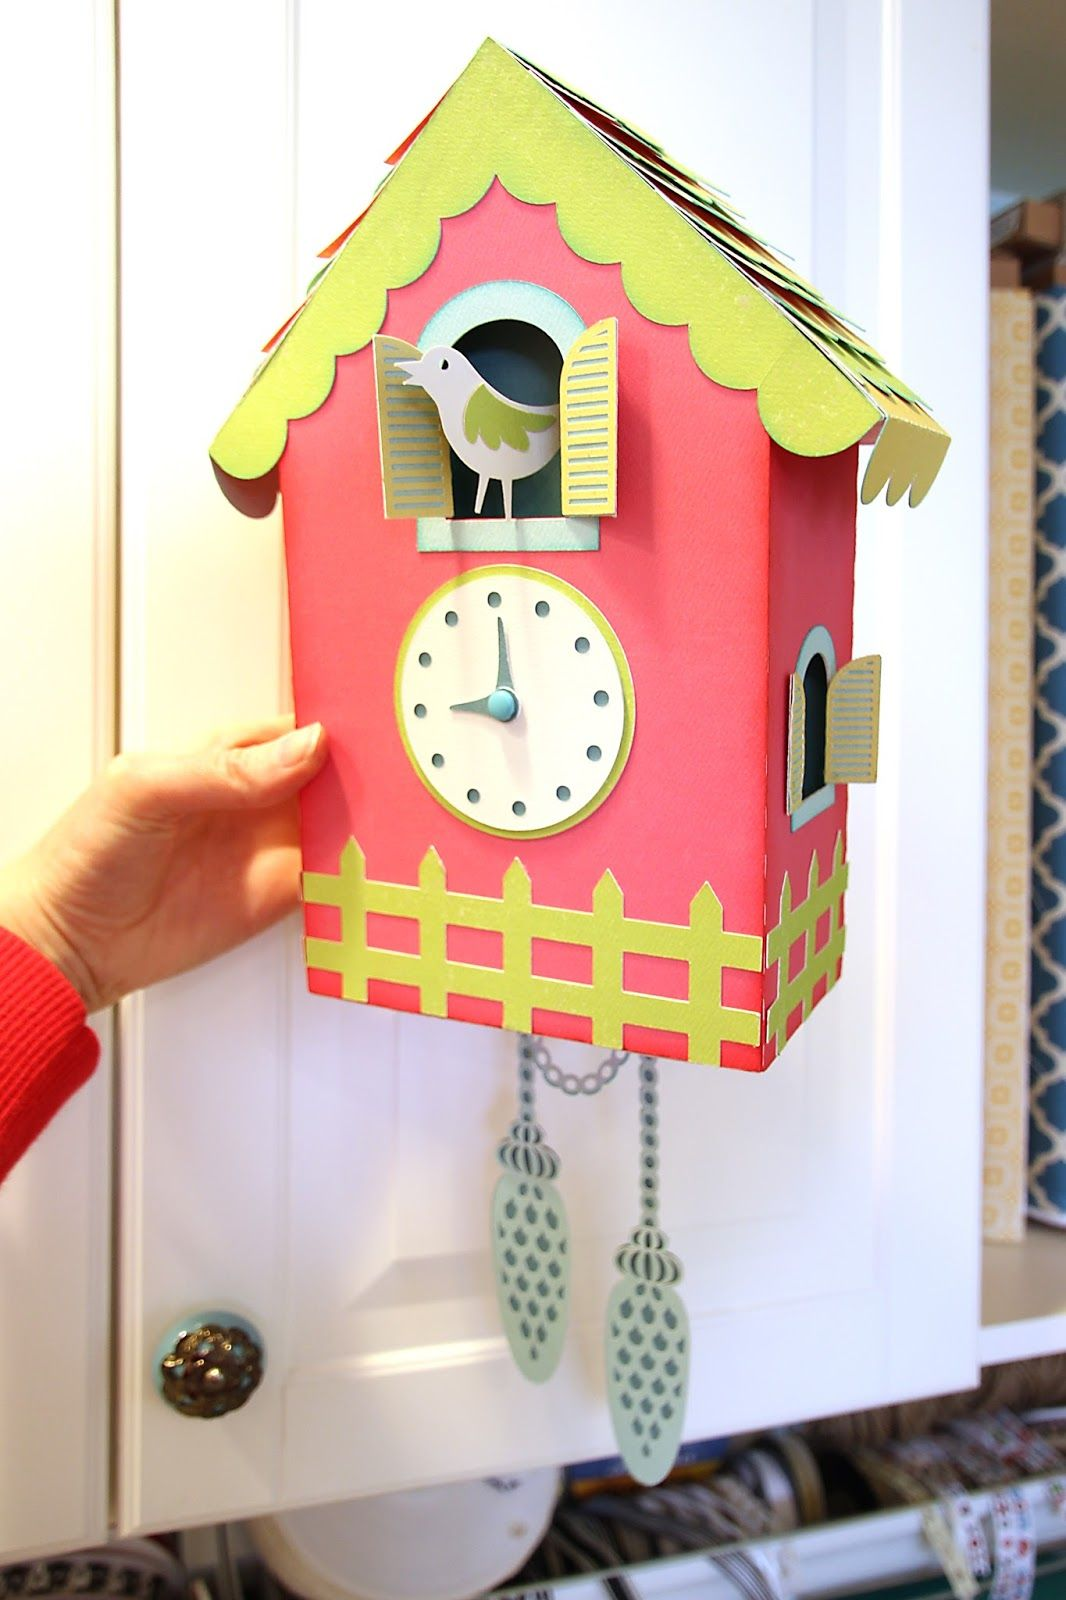 Samantha Walker S Imaginary World Part 2 Cuckoo Clock